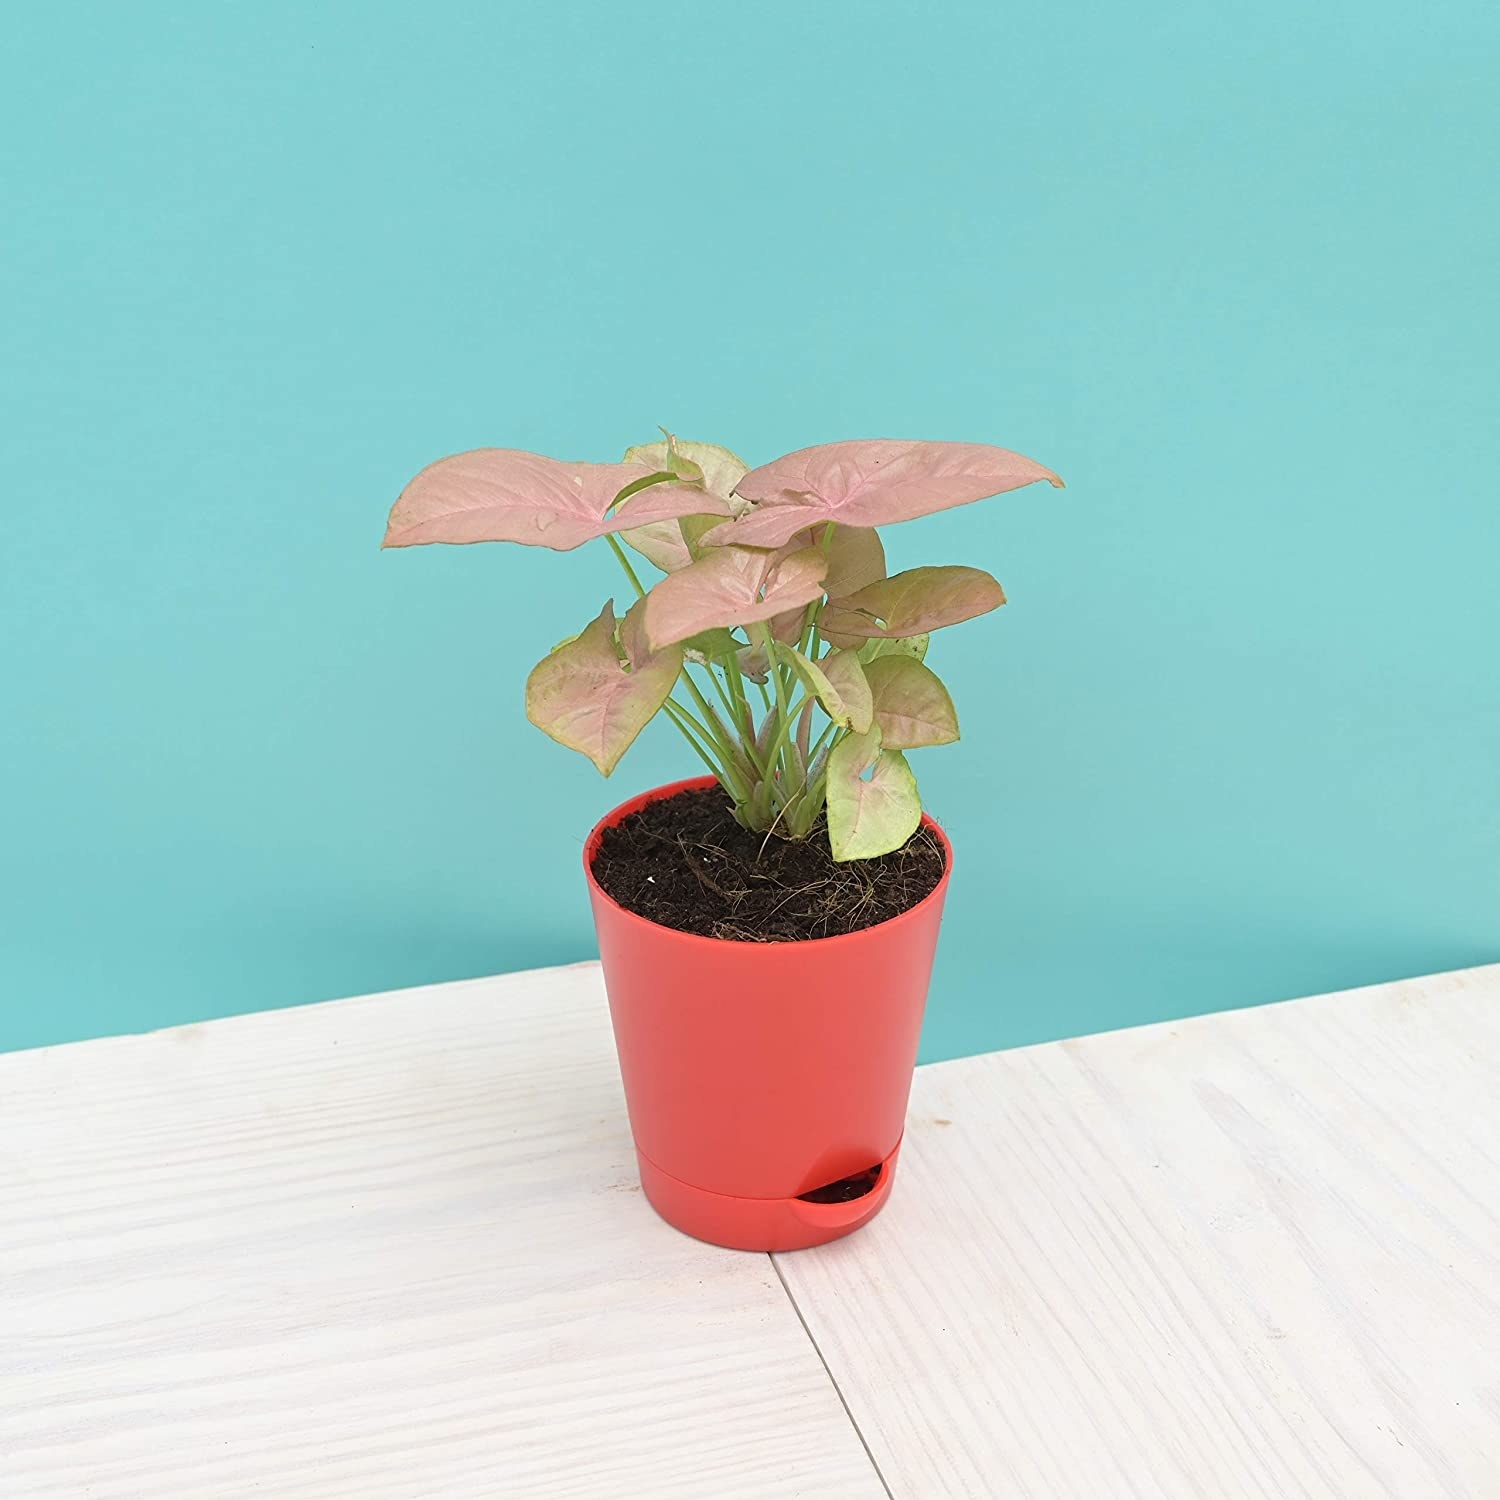 A red flower pot with a plant in it